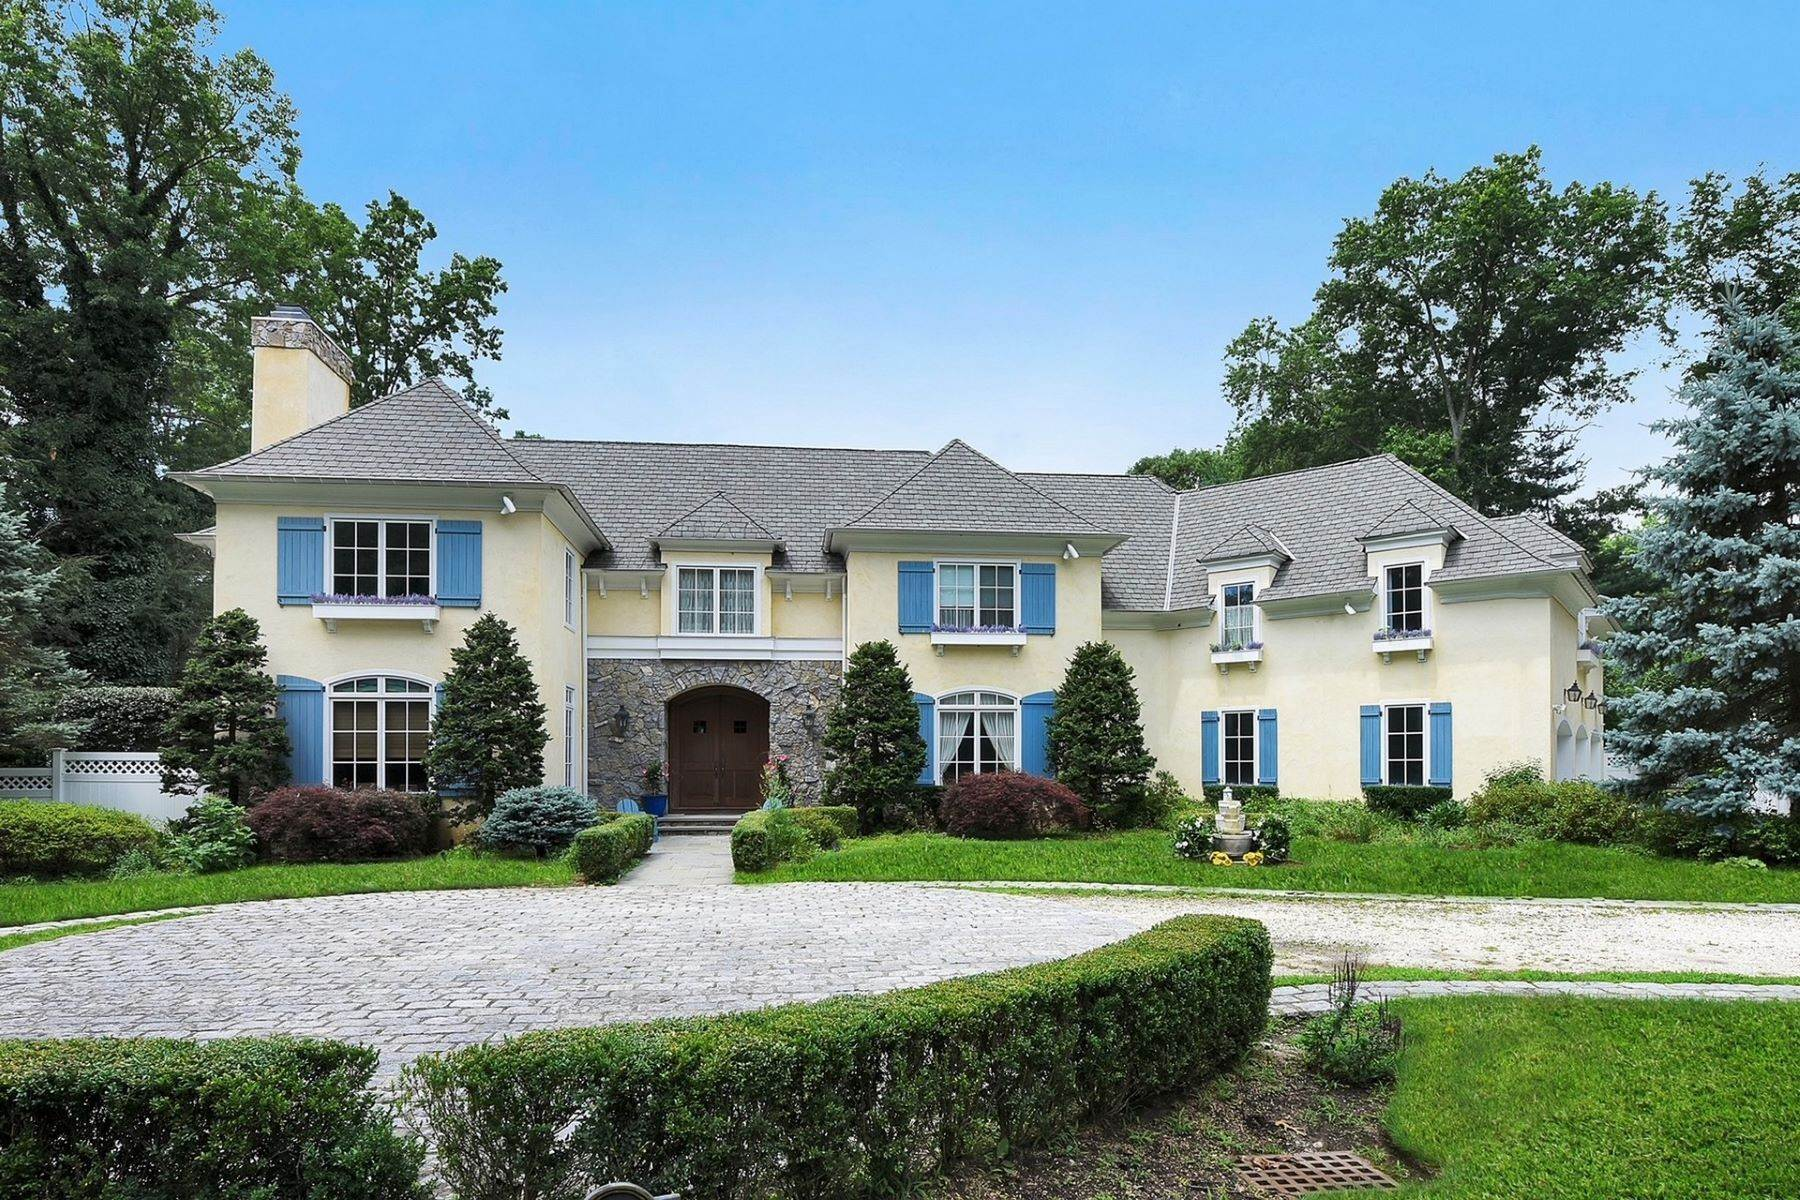 Single Family Homes for Sale at Demarest, New Jersey 07627 United States